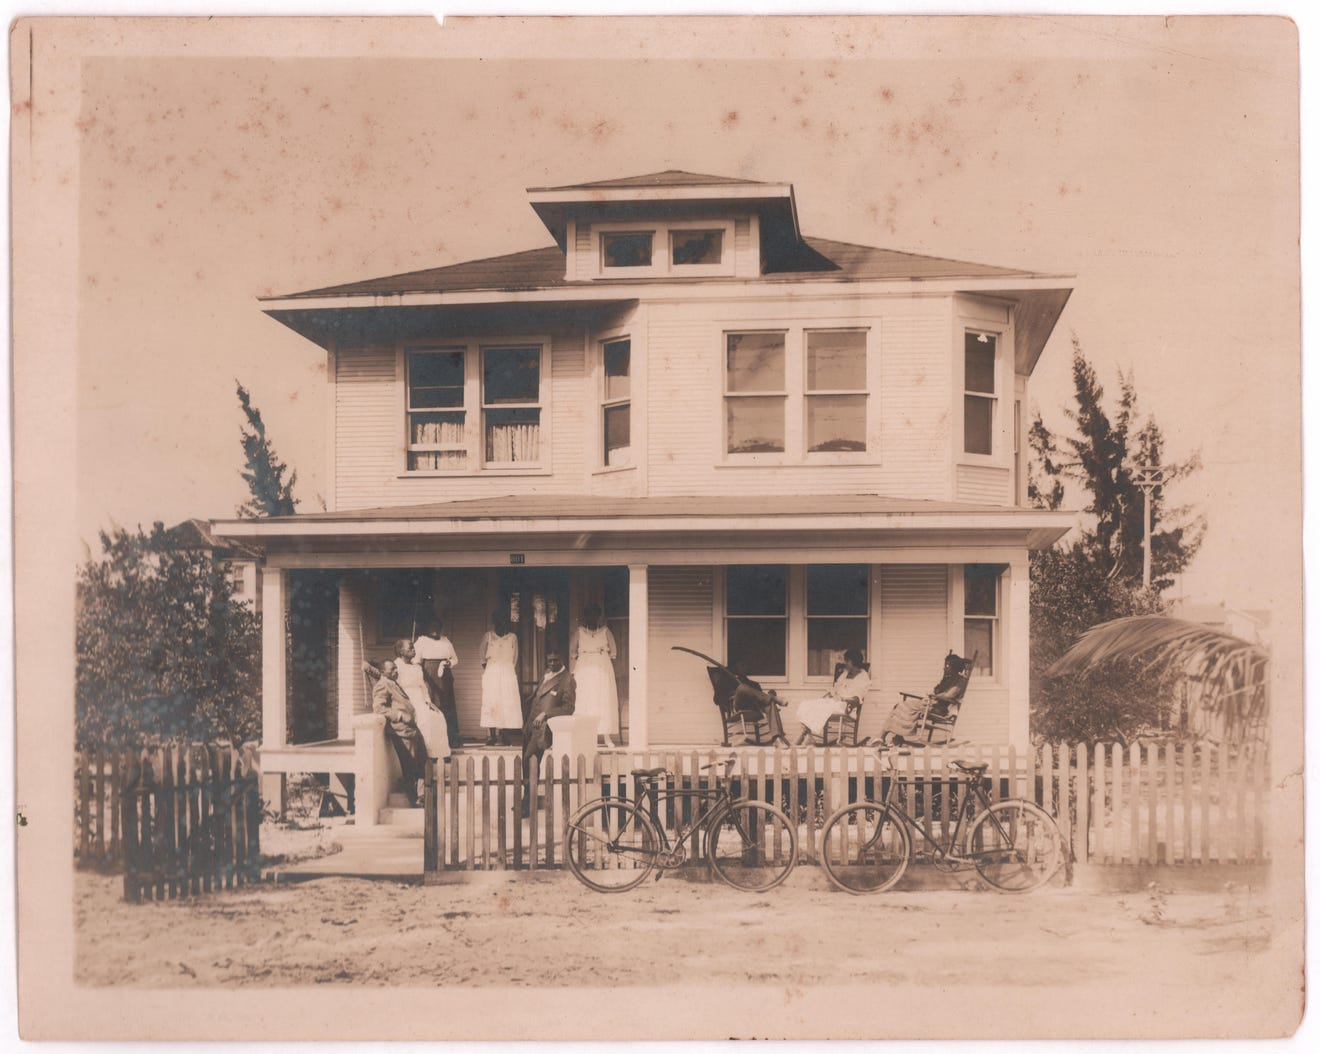 The Mickens Family House